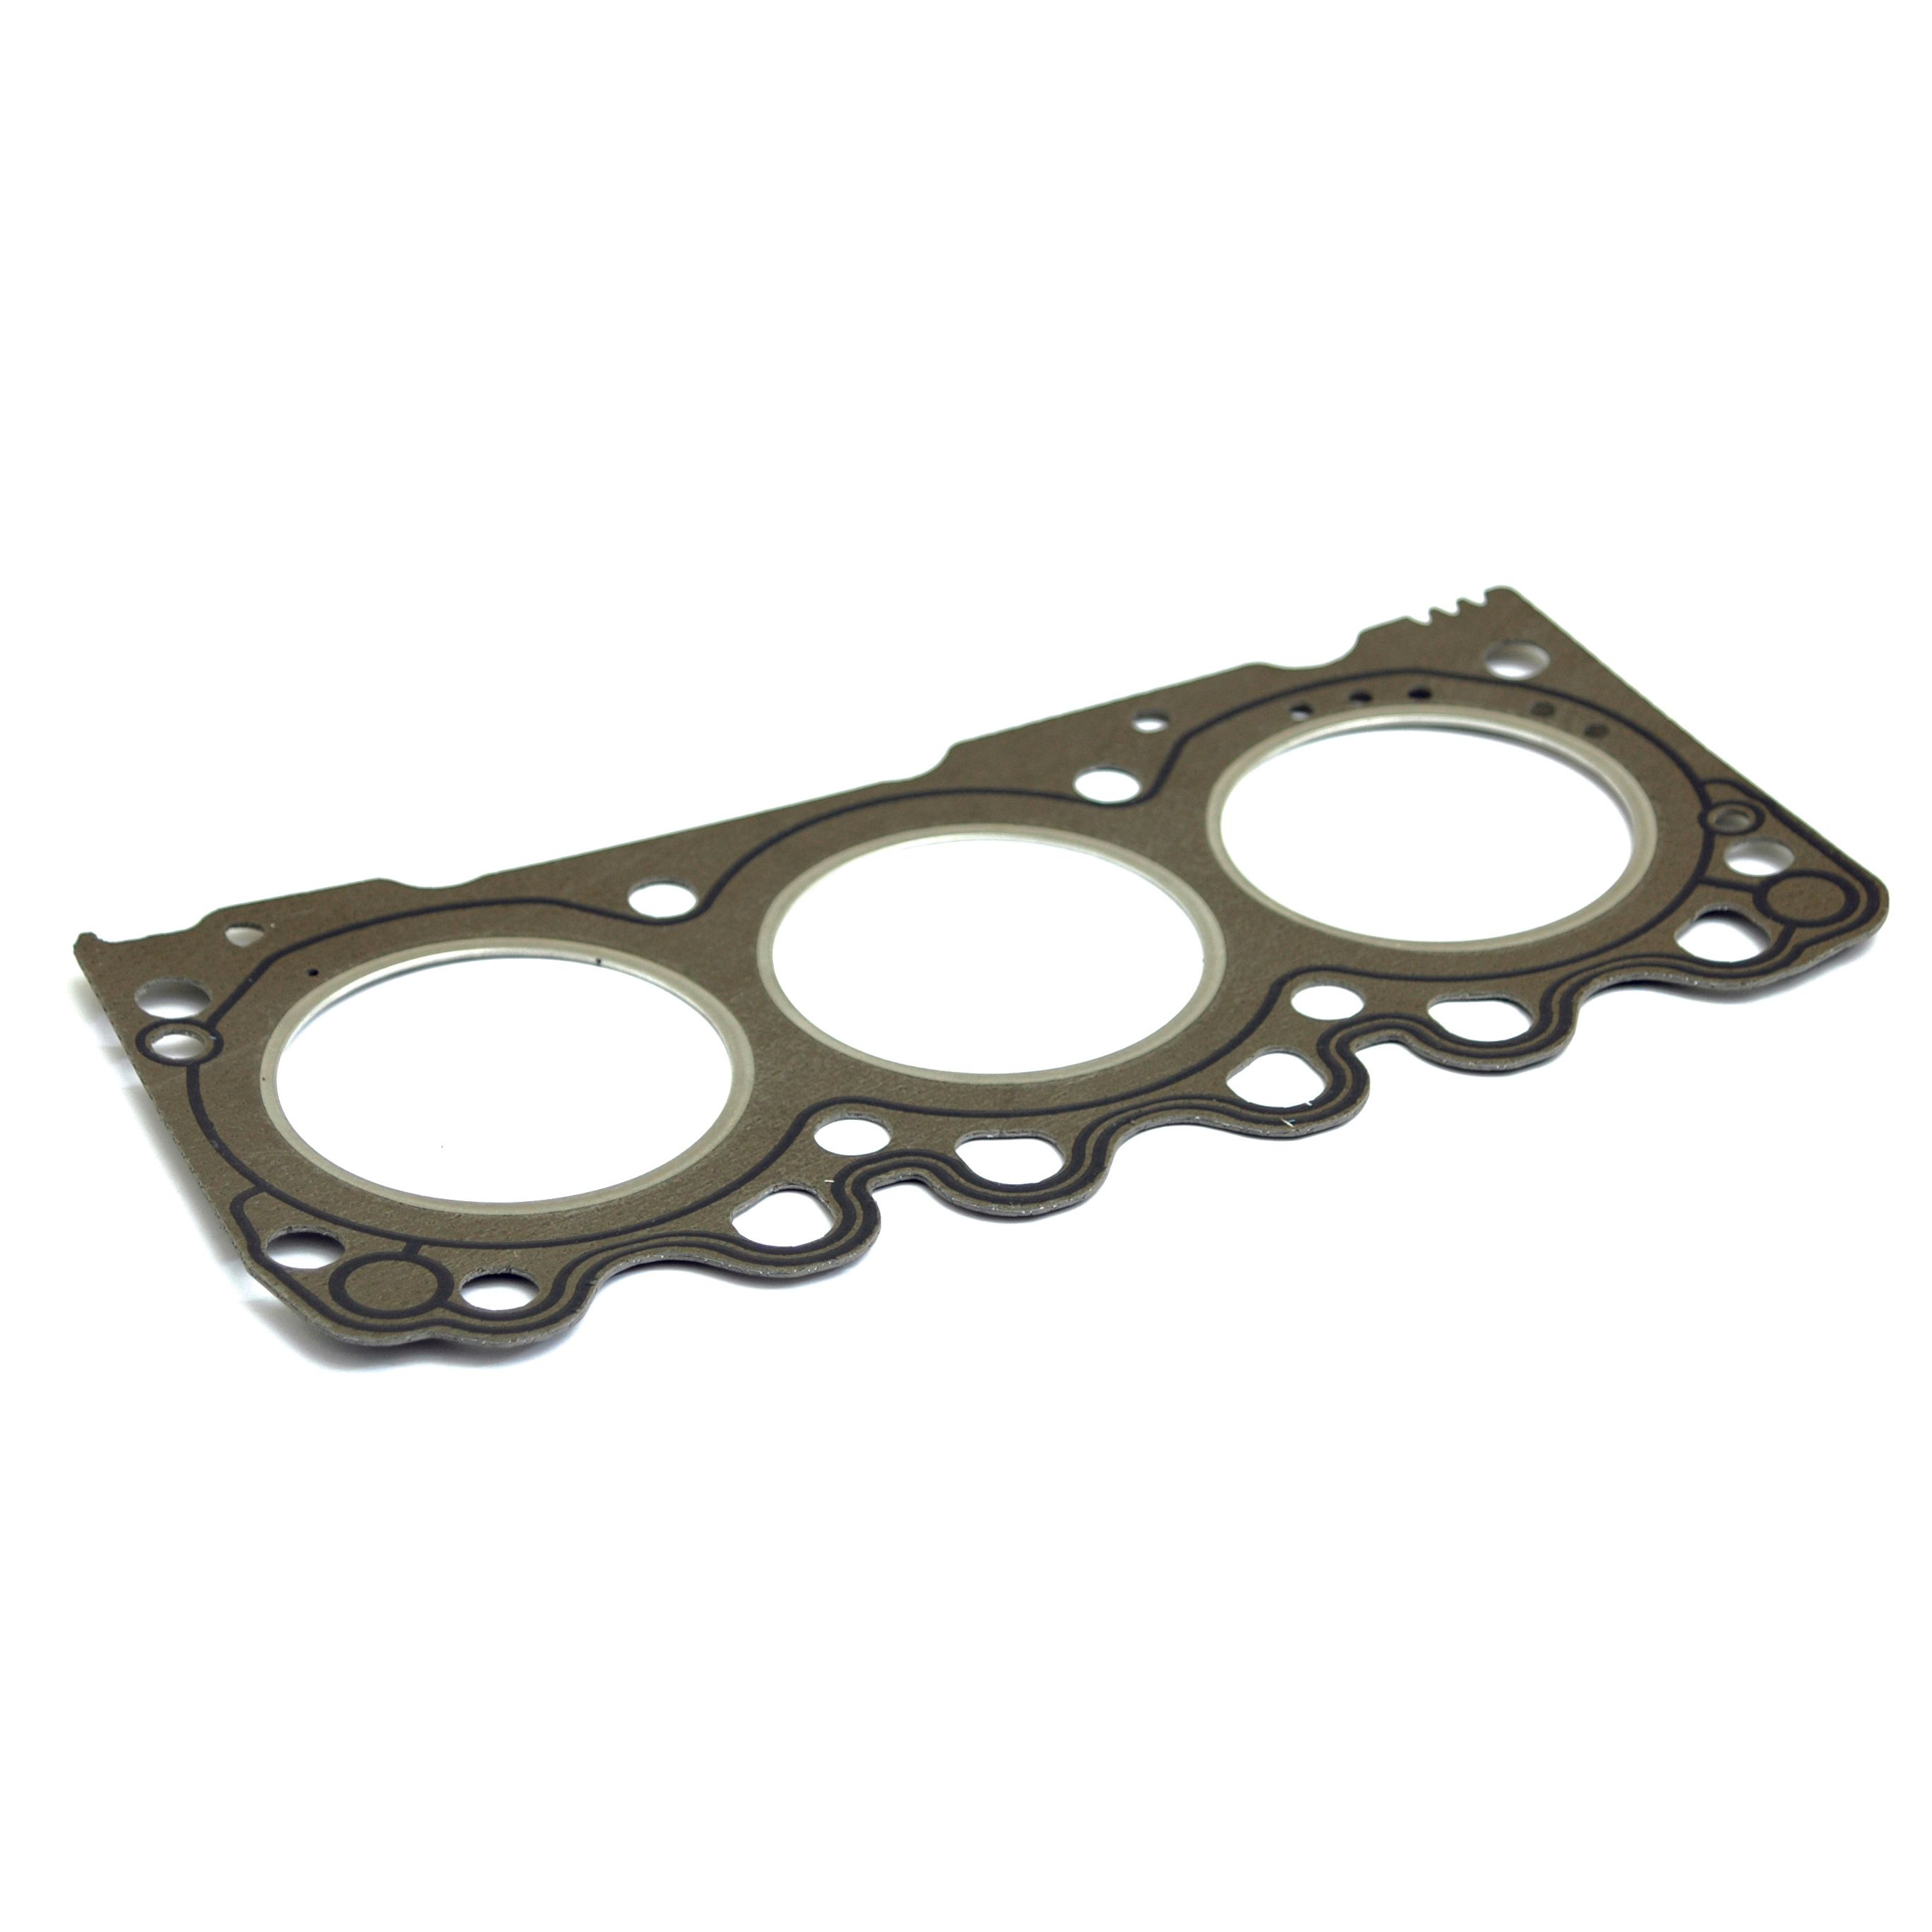 DEUTZ-FAHR HEAD GASKET (3 CYL.)